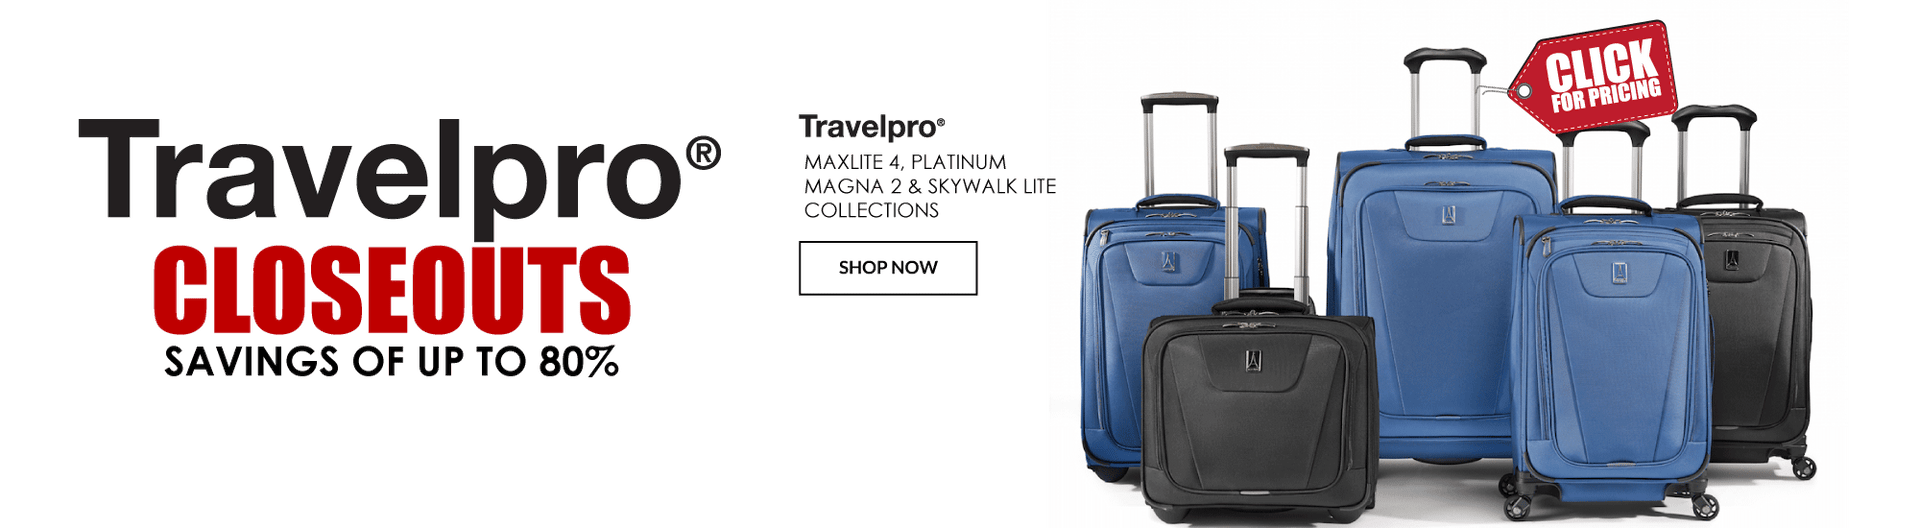 bbe0e0978e9 Canada Luggage Depot│Luggage - Backpacks - Bags at Discounted Prices